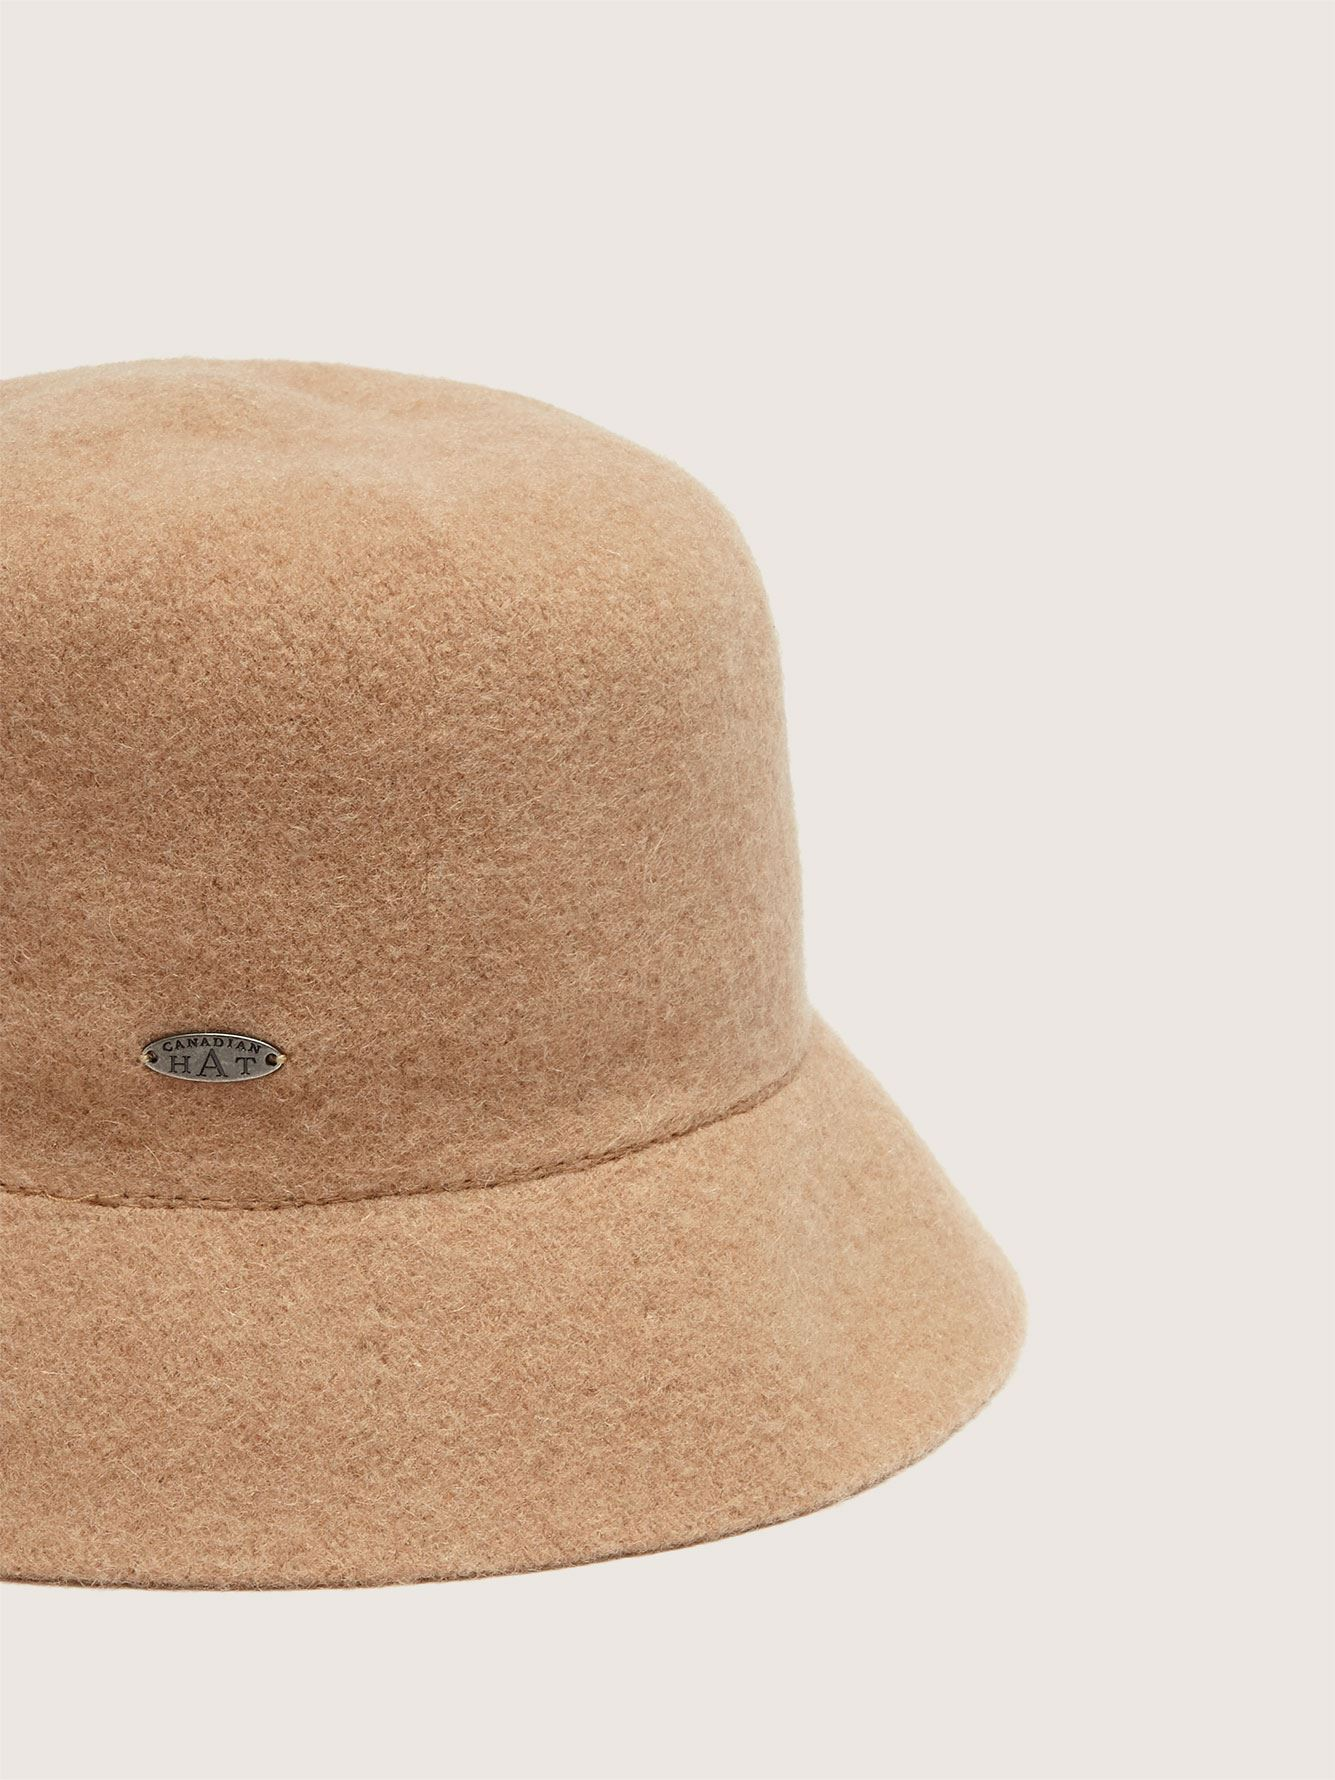 Felt Bucket Hat - Canadian Hat